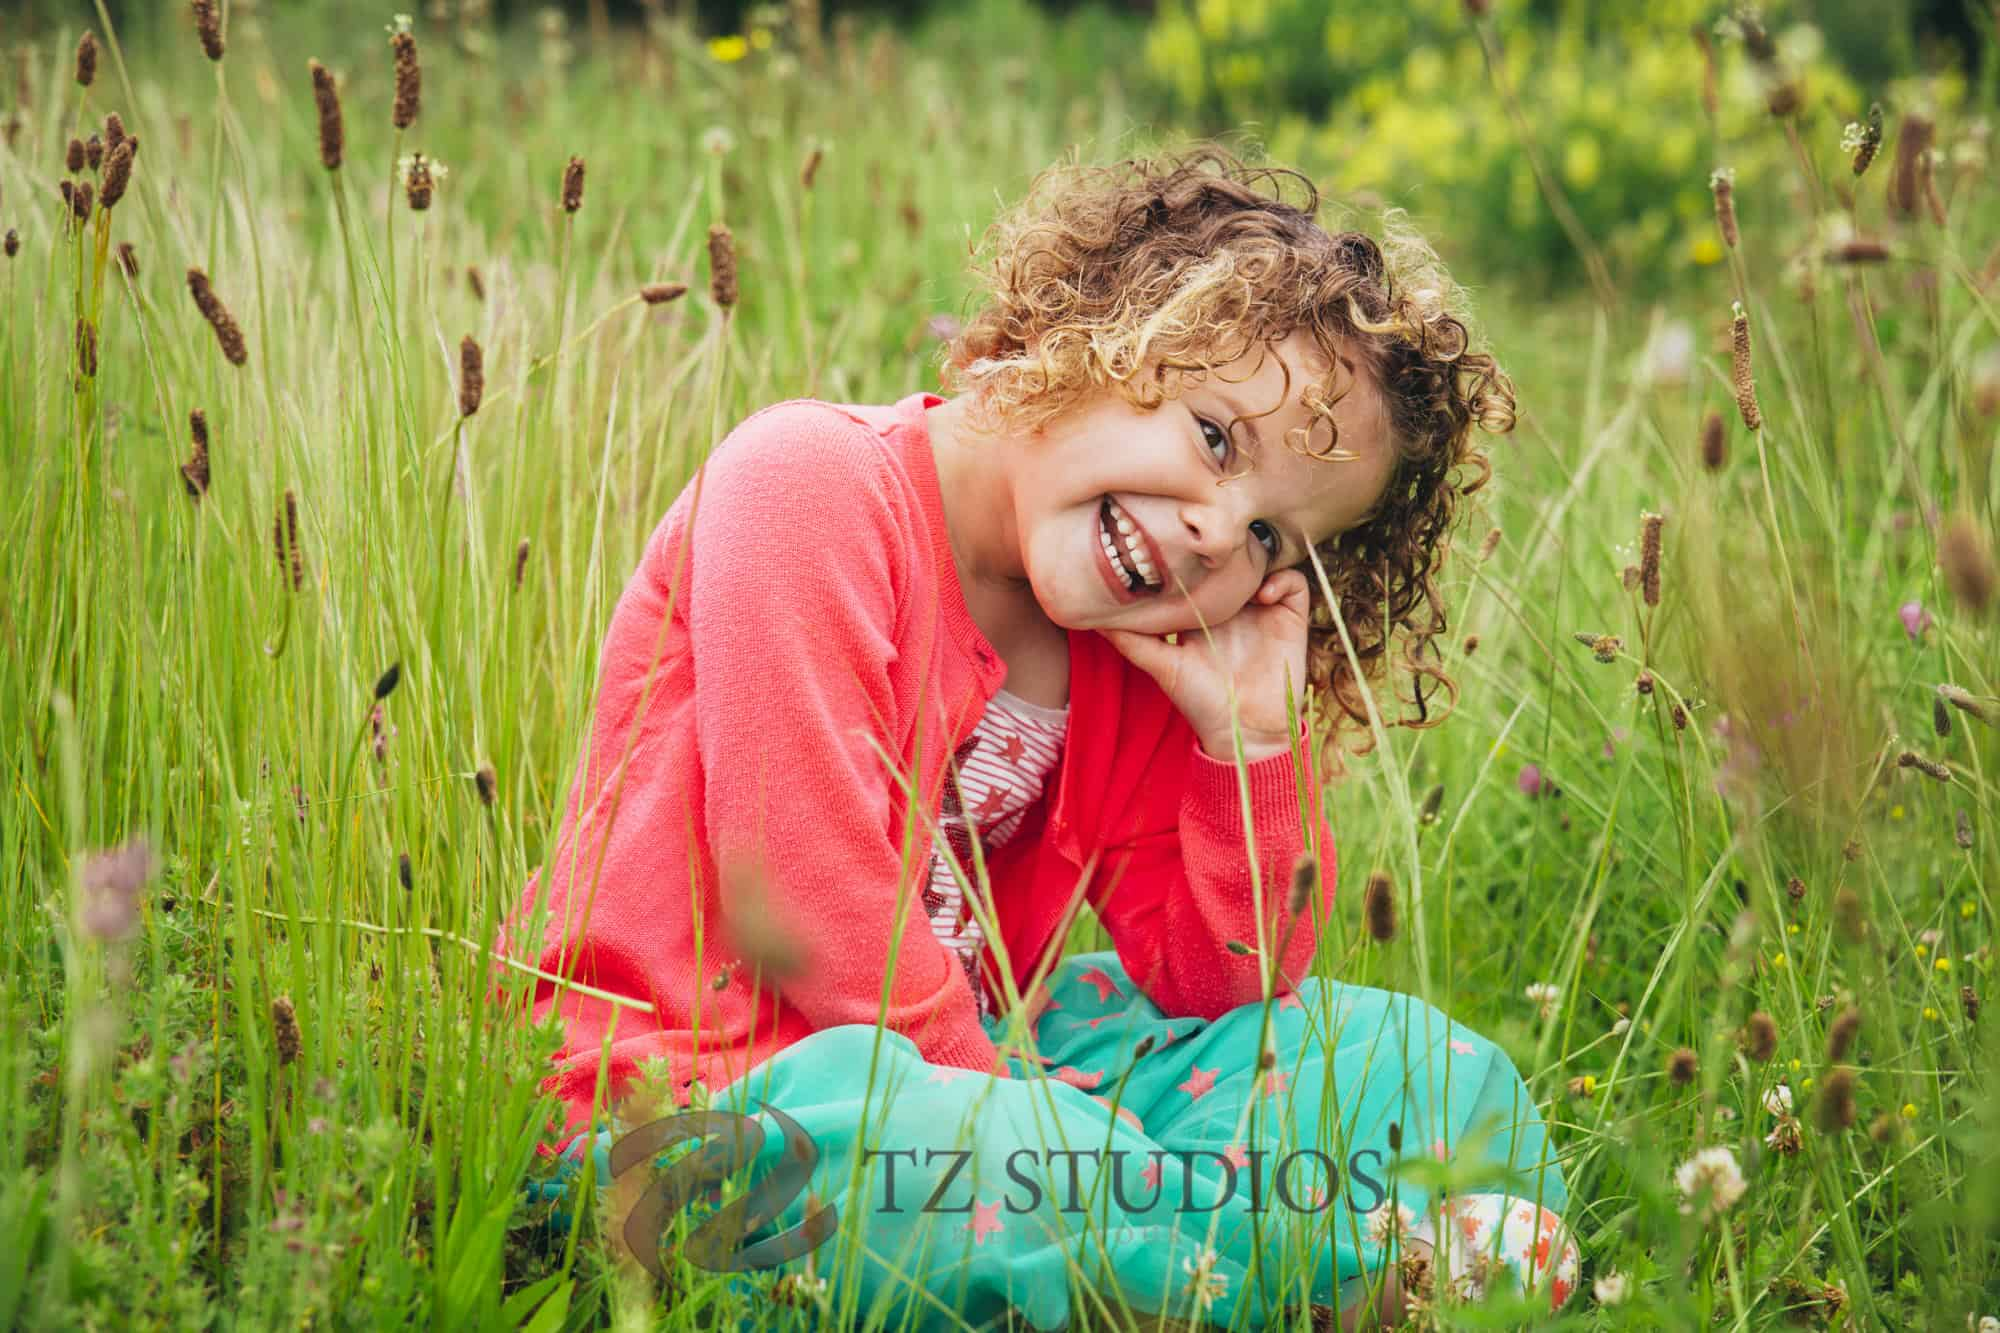 Kids of Manawatu children portrait project with this super happy girl